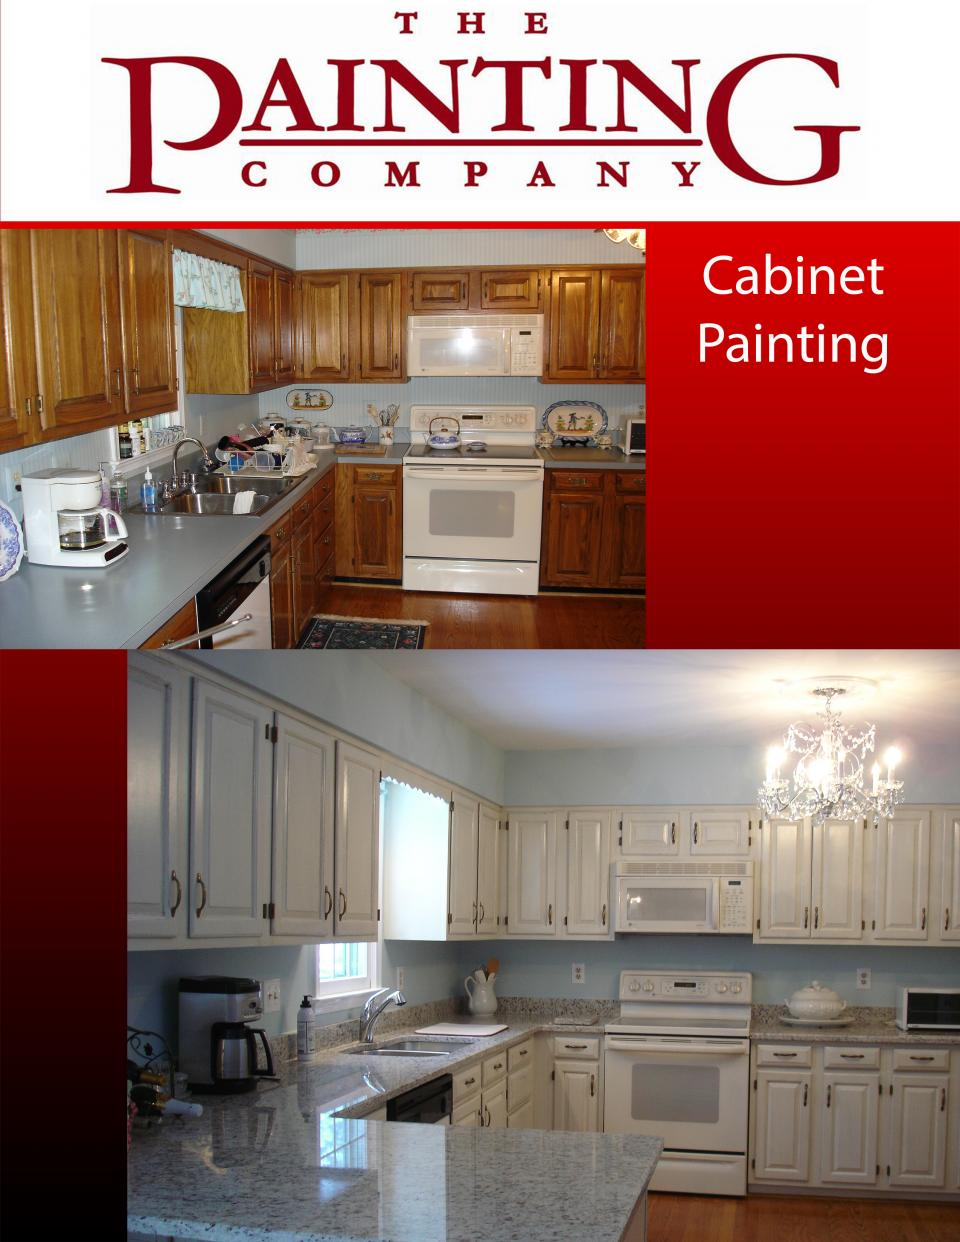 Cabinet Painting   The Painting Company